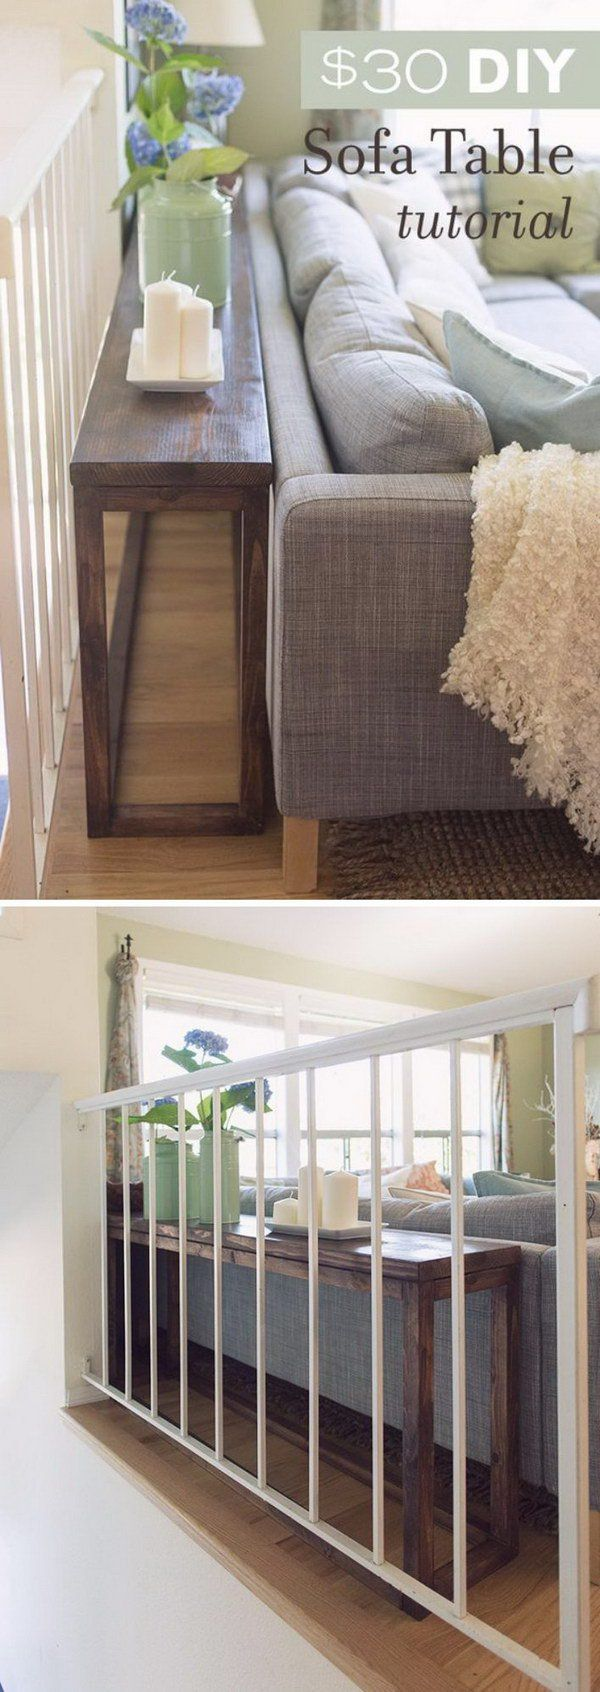 $30 DIY Sofa/Console Table for behind the couch.